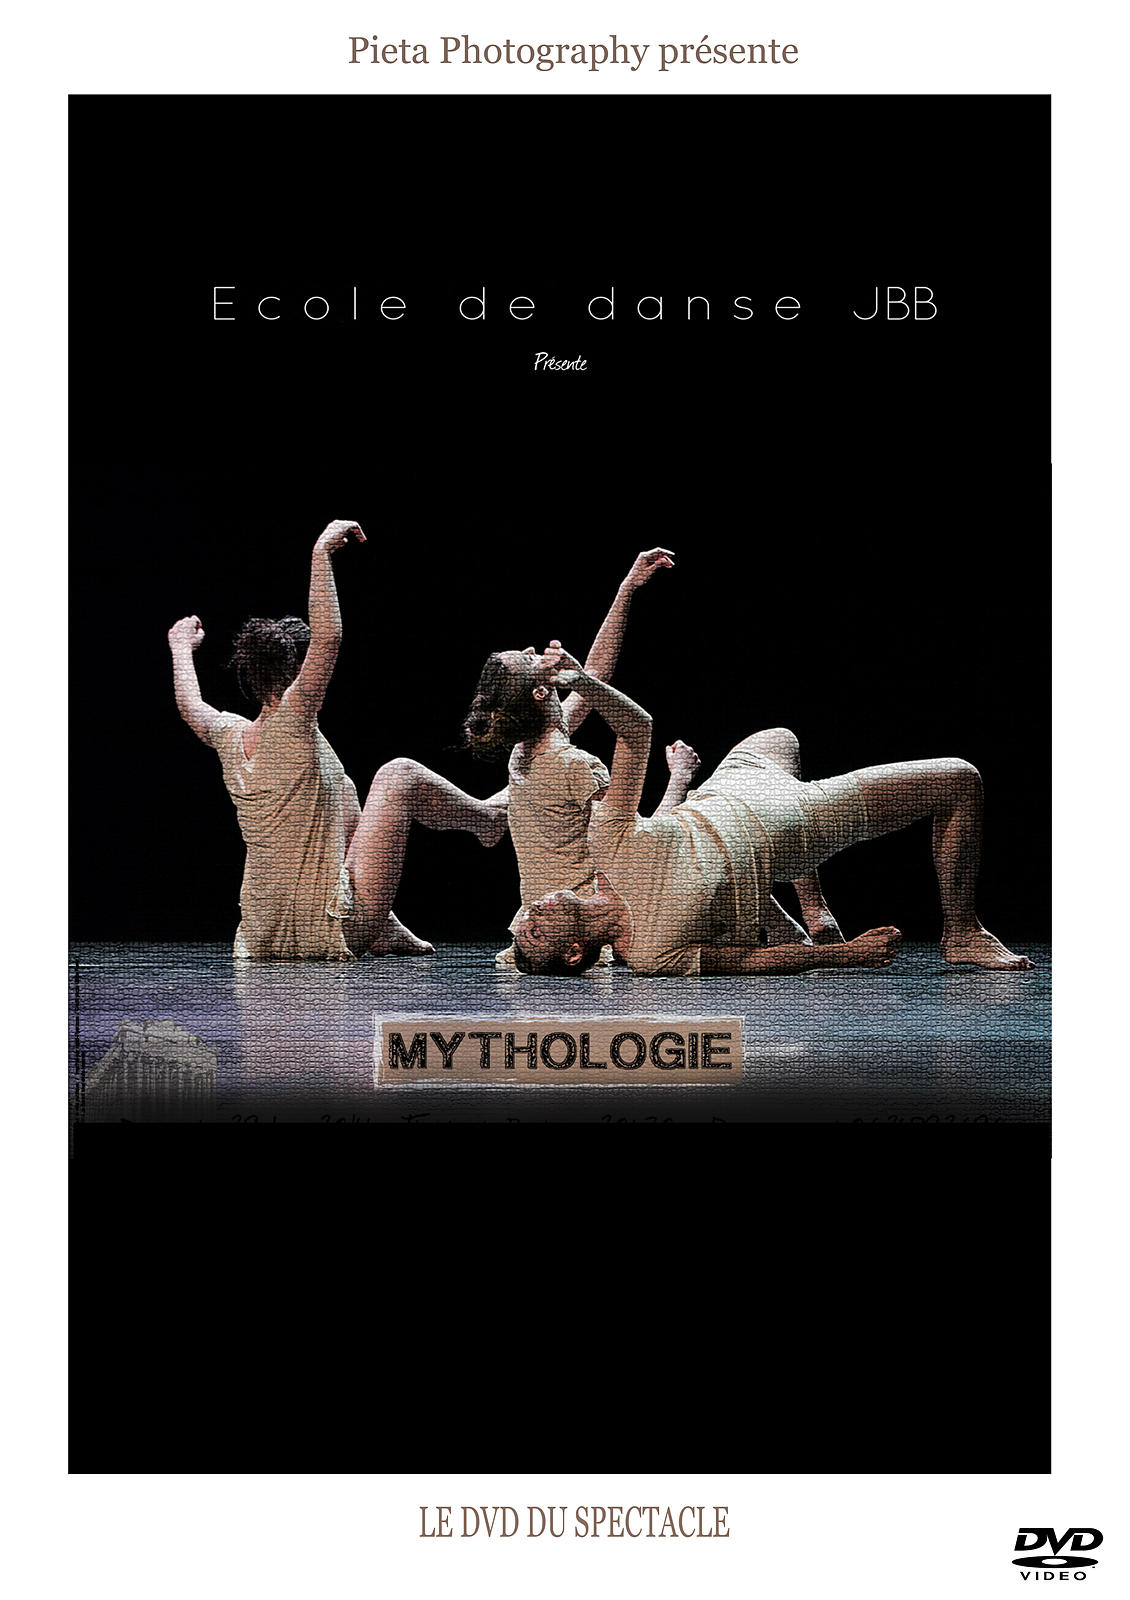 JBB_Mythologie_2014